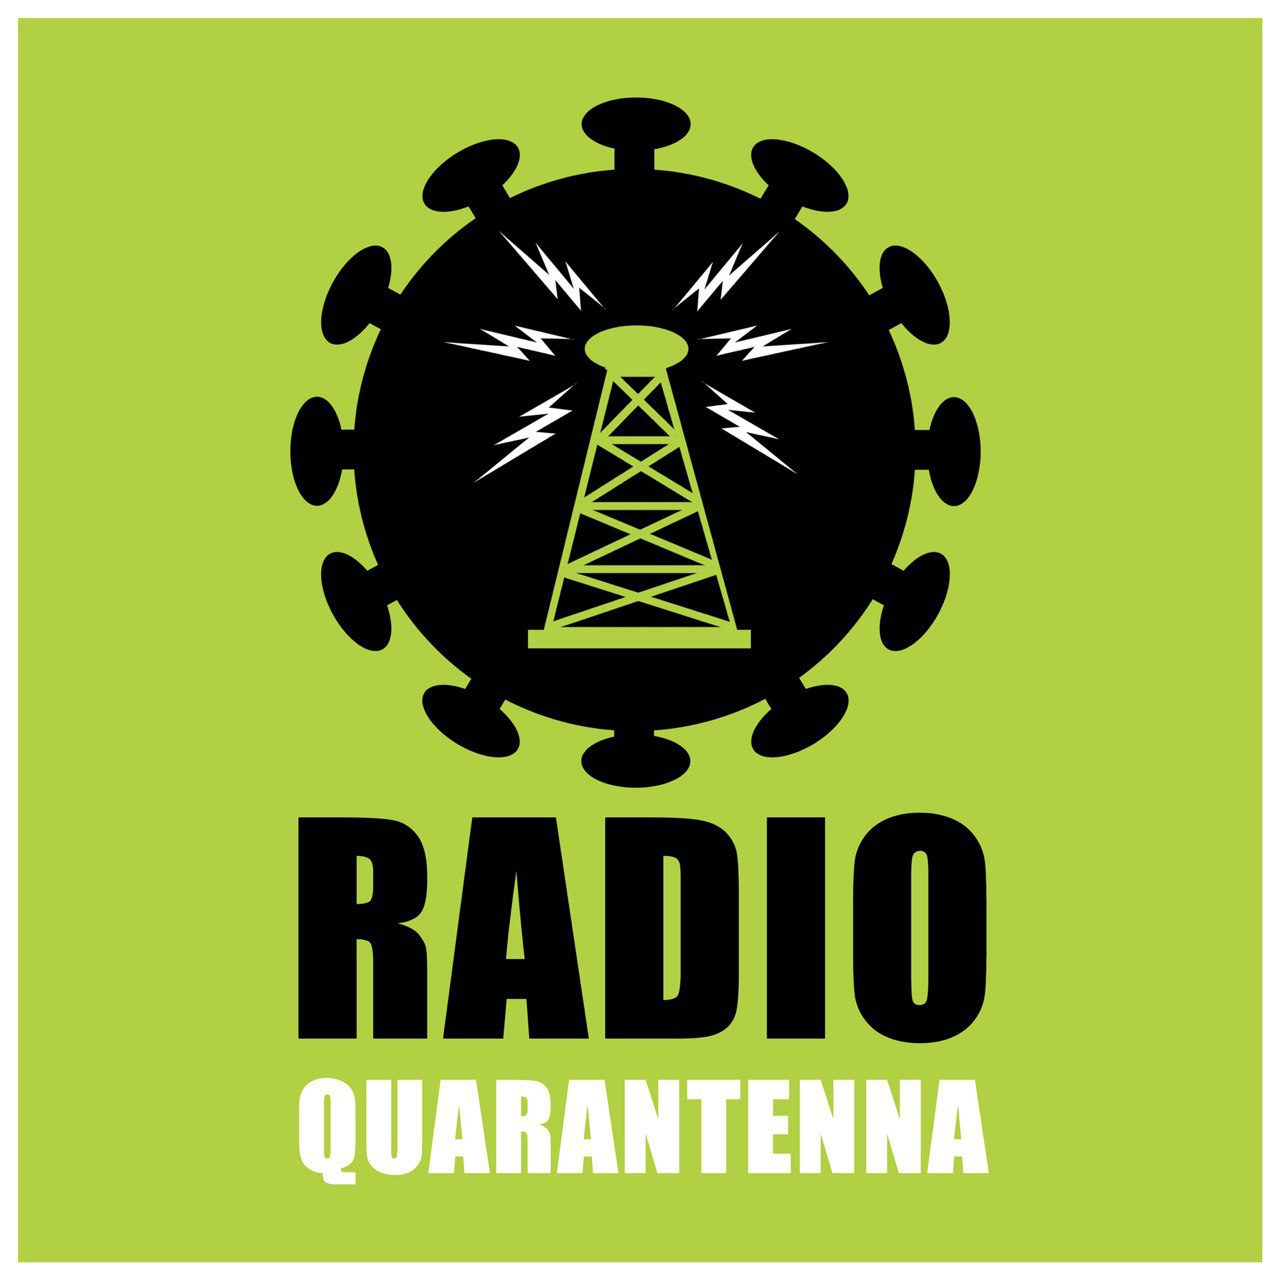 Radio Quarantenna